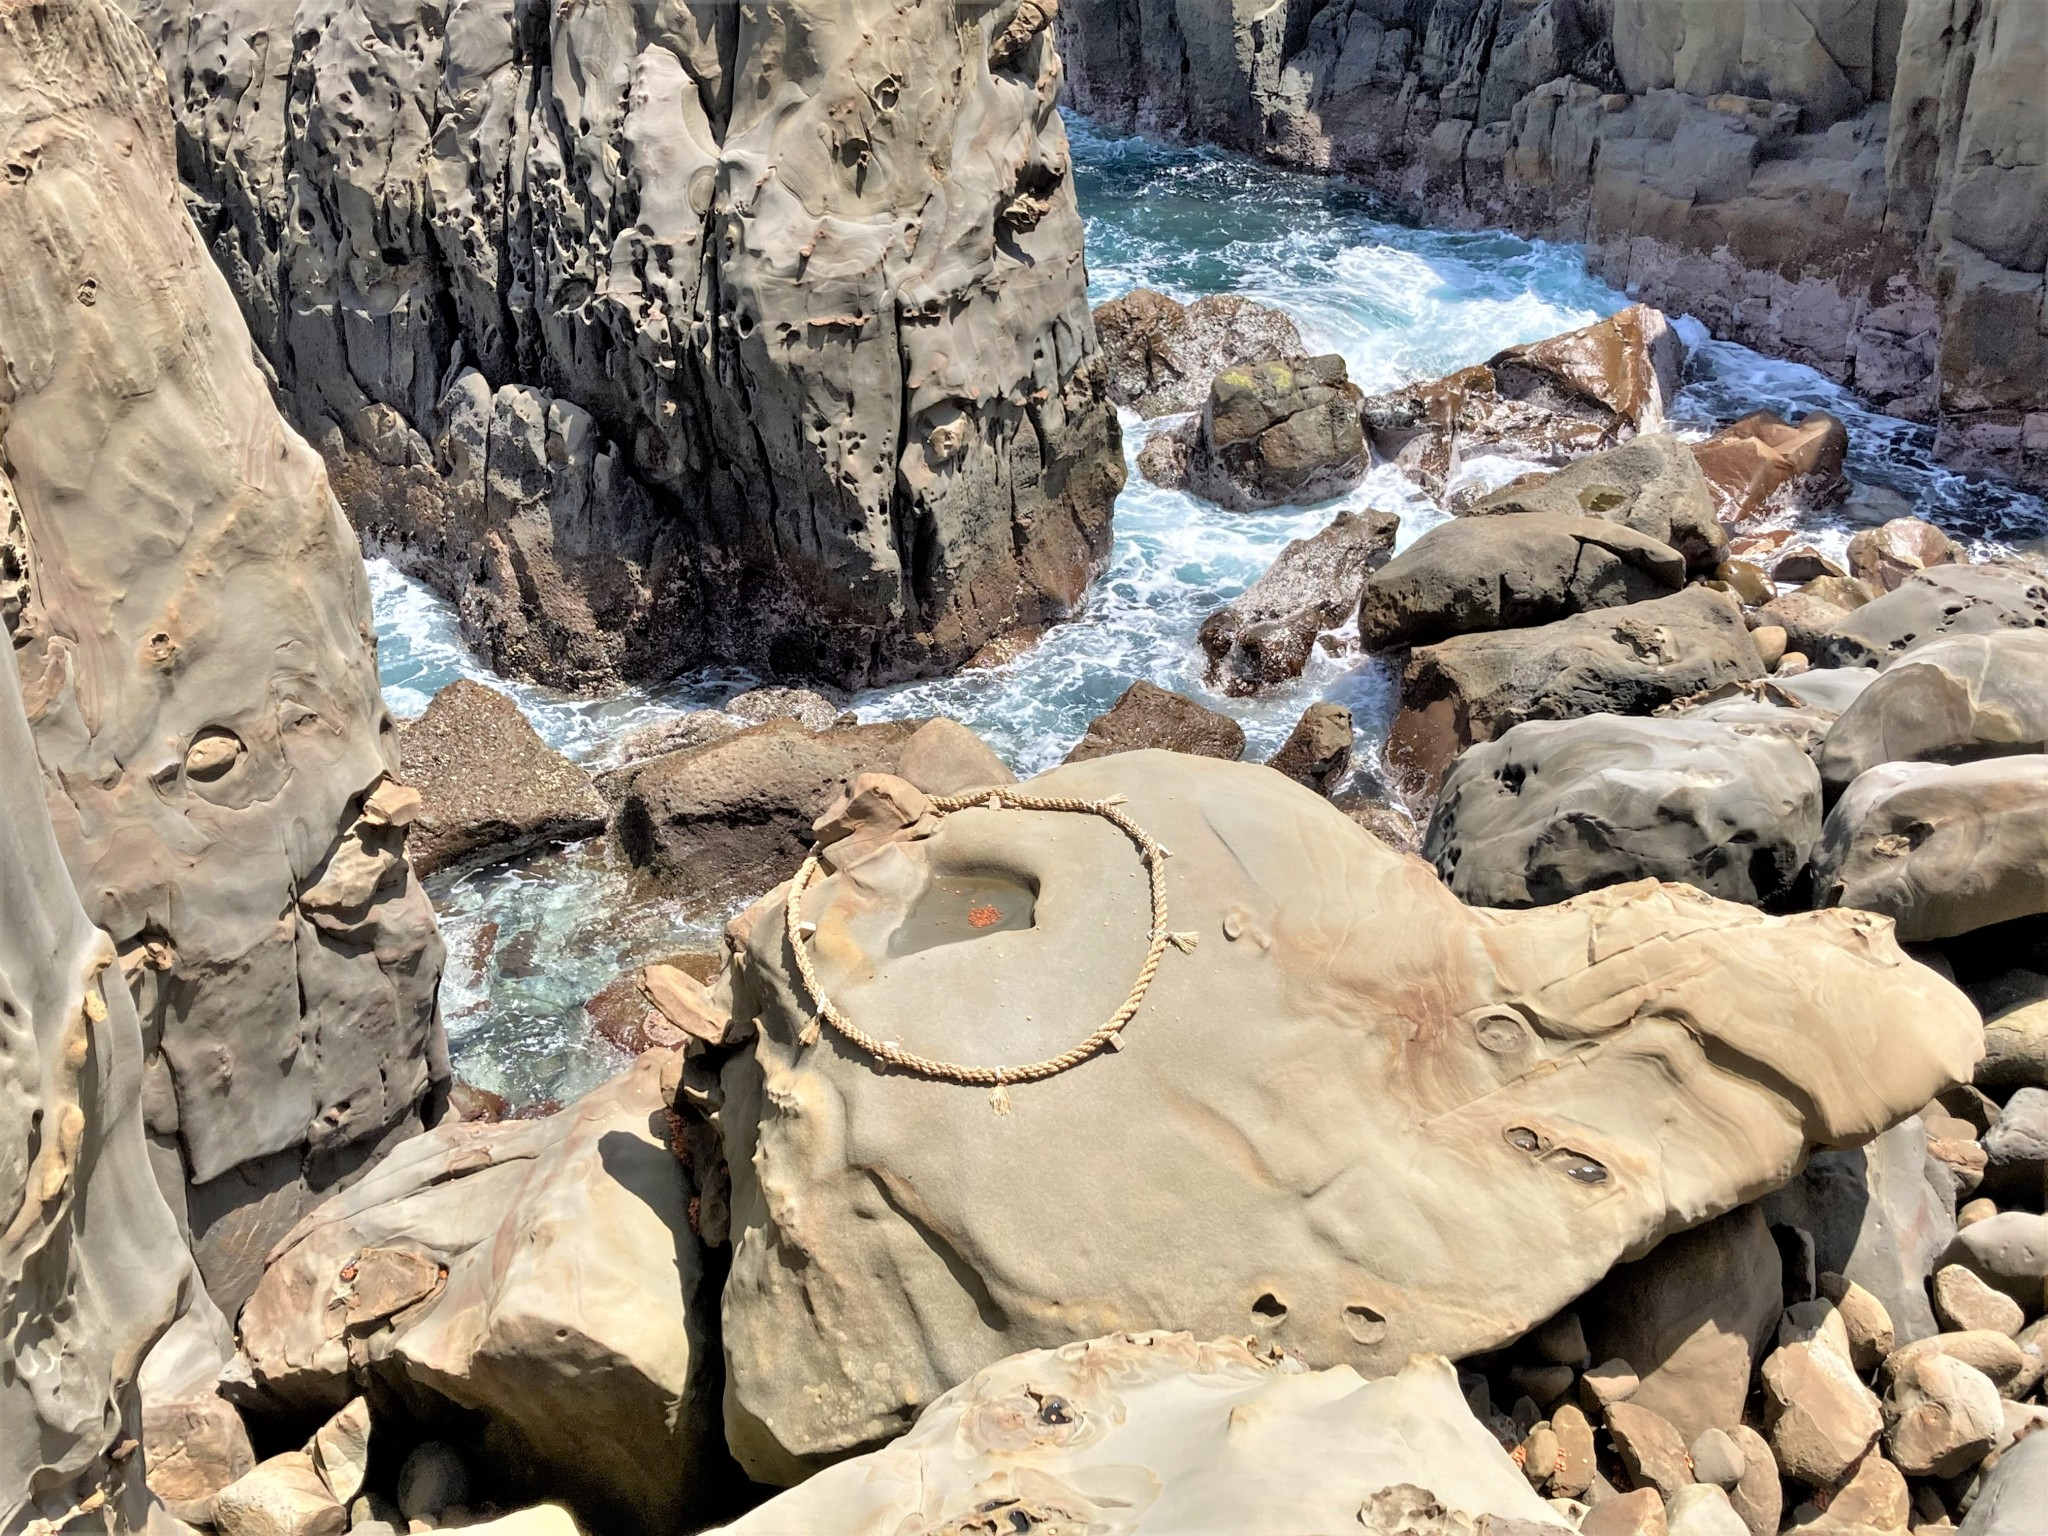 Ocean-side cliffs and a giant boulder at Udo Shrine, Miyazaki decorated with a large circle of rope that designates a sacred place in Japan's Shinto religion.